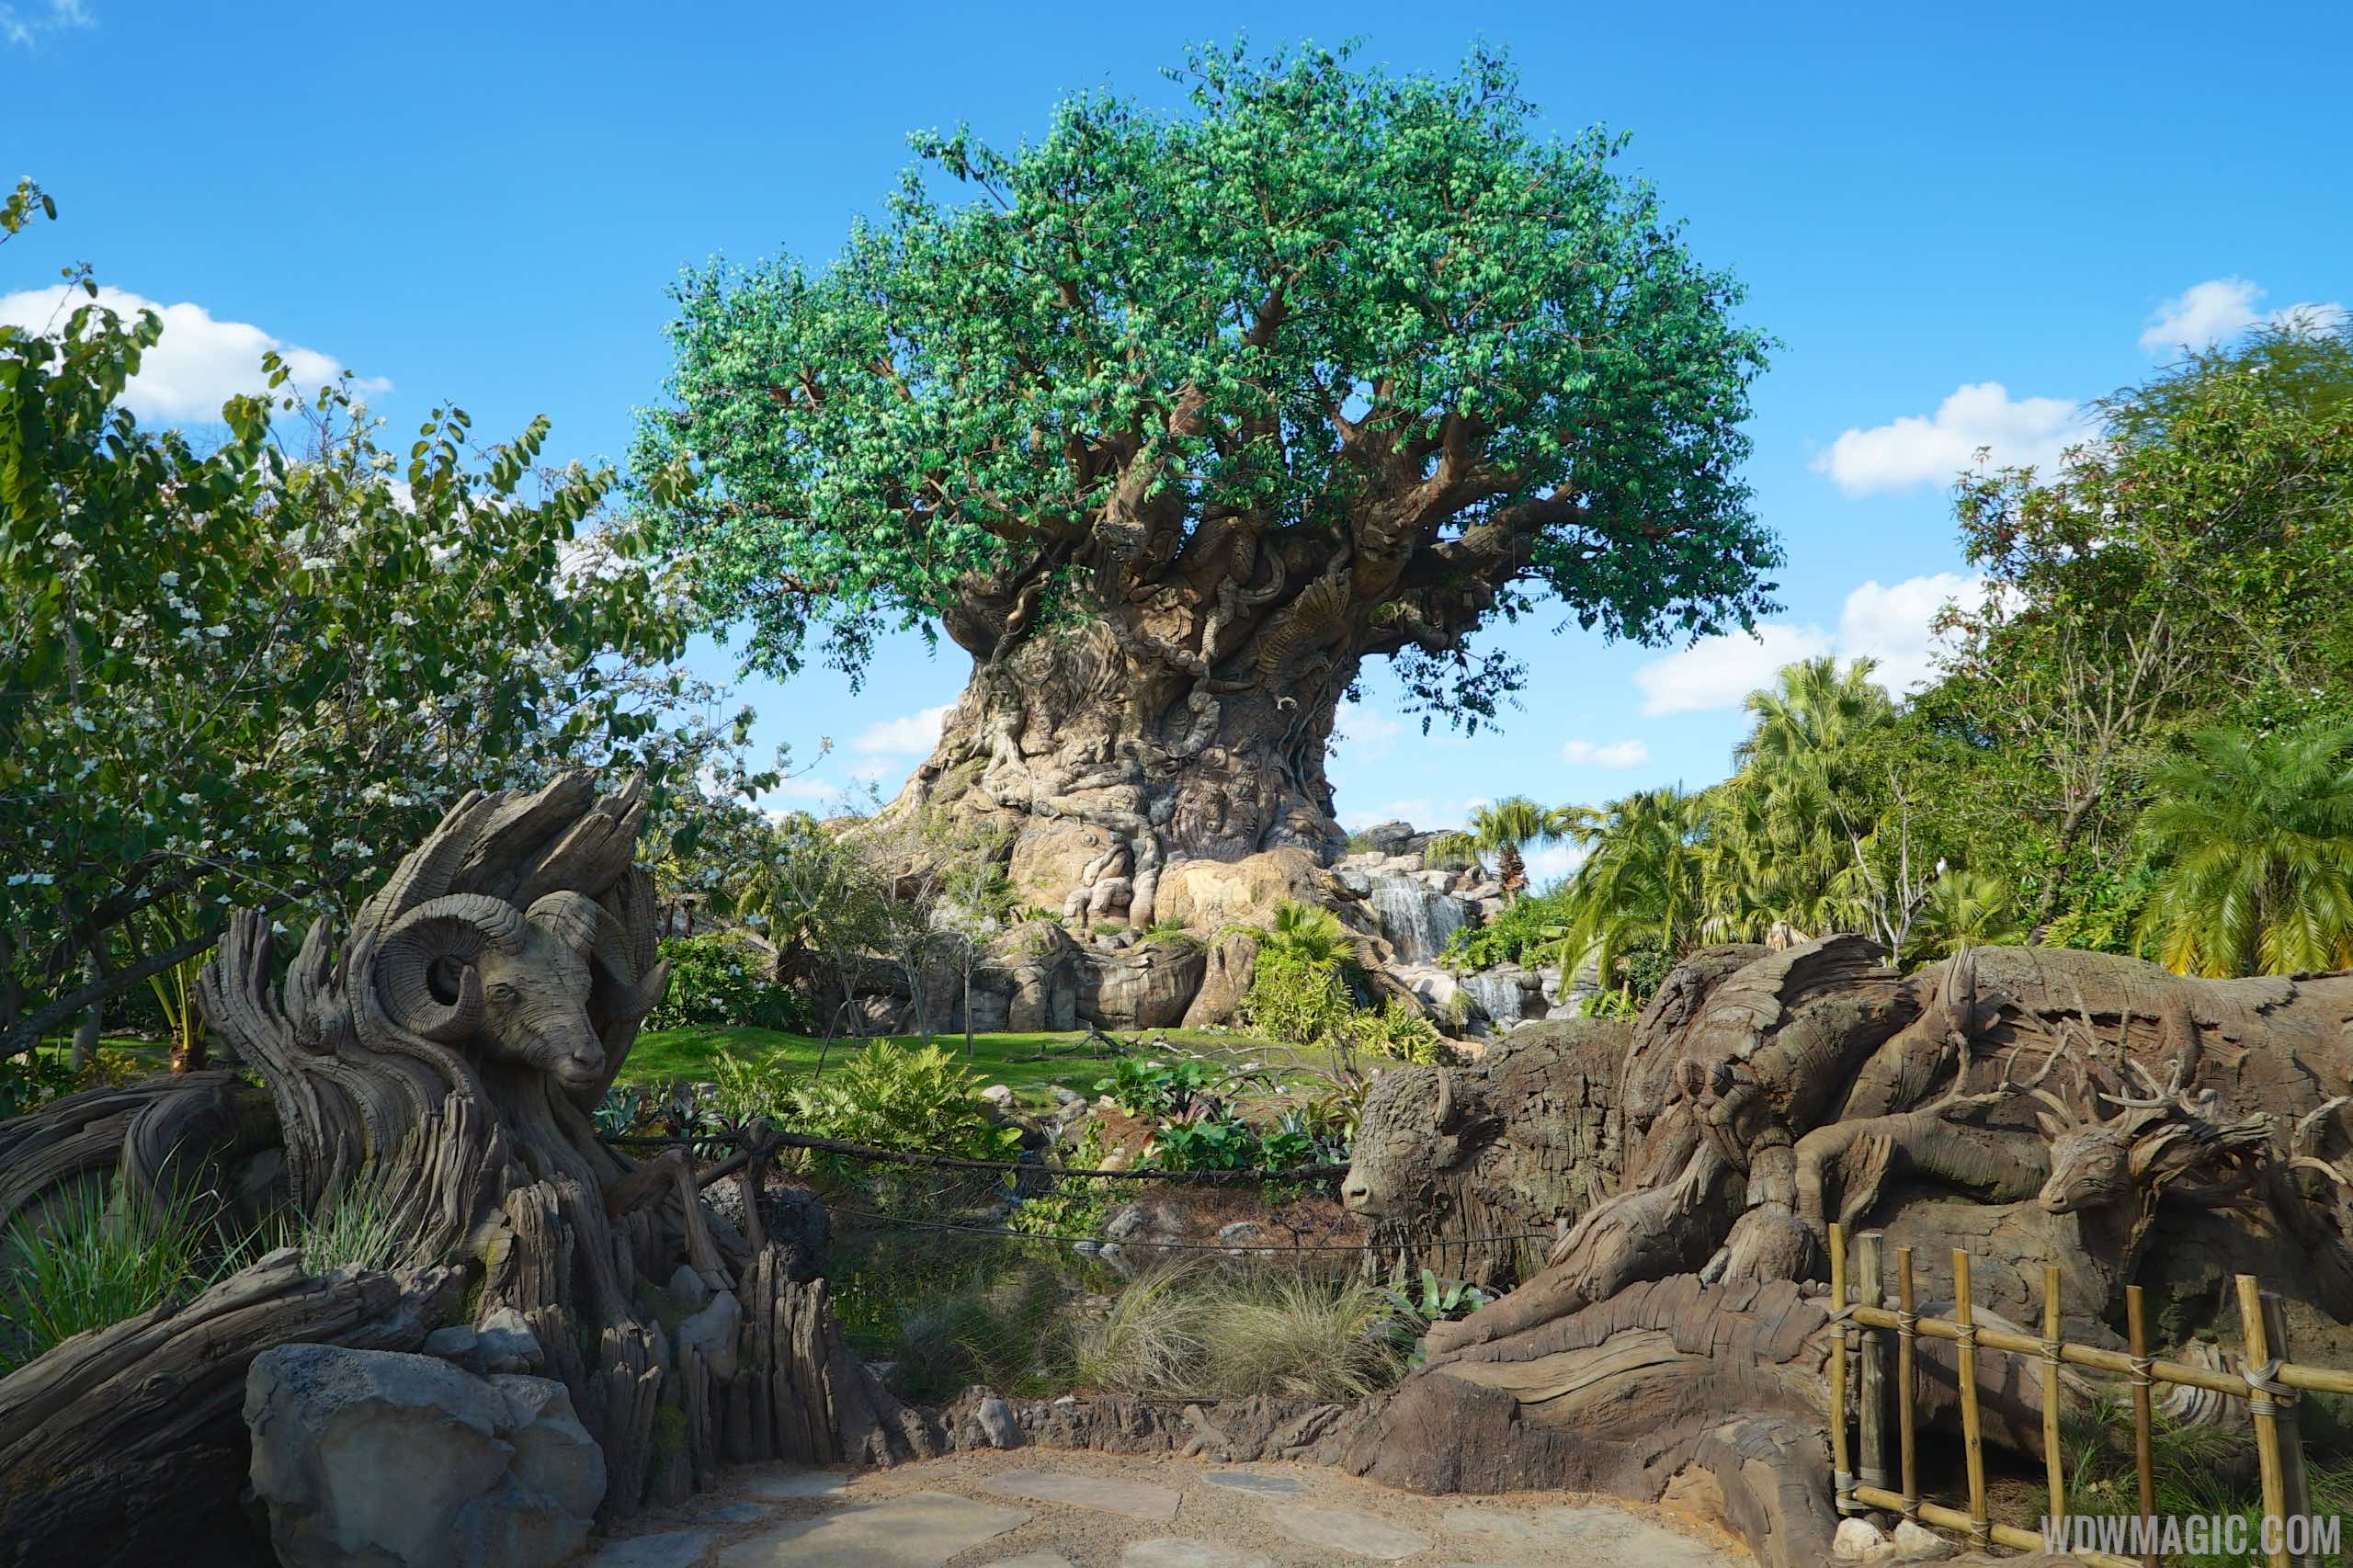 New roots at the Tree of Life - Photo 1 of 6